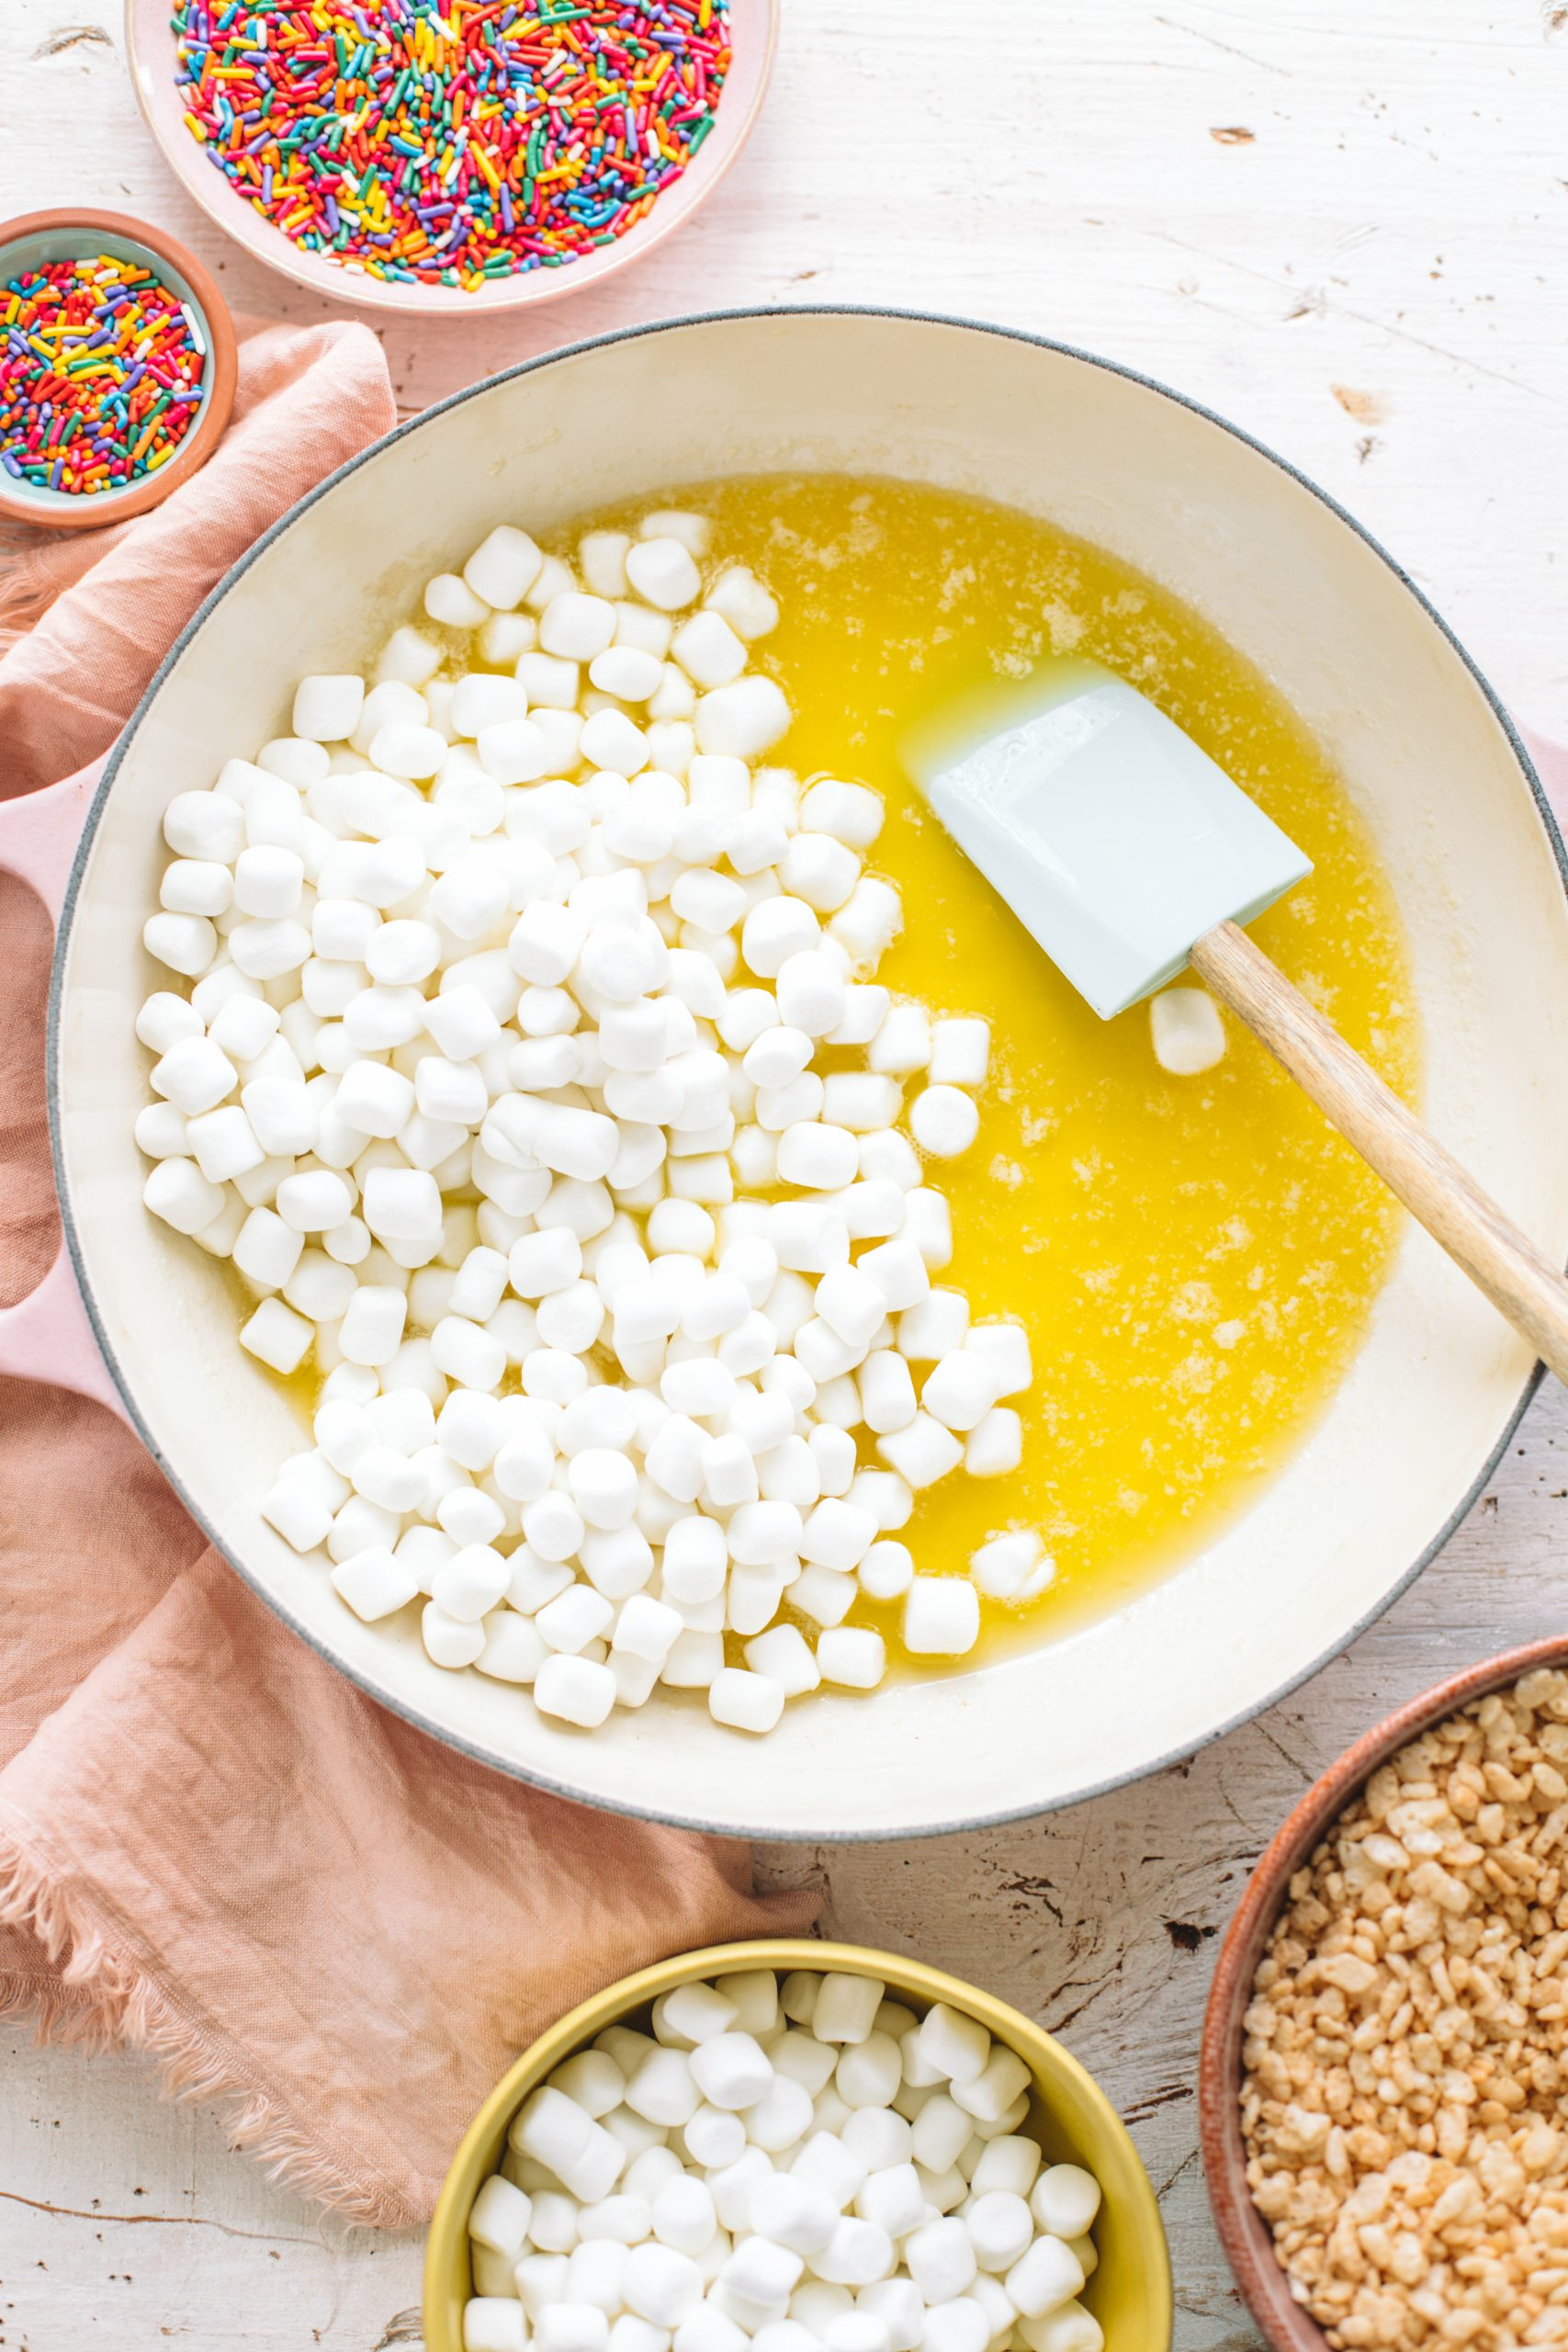 A shallow braiser dish filled with melted butter and marshmallows.